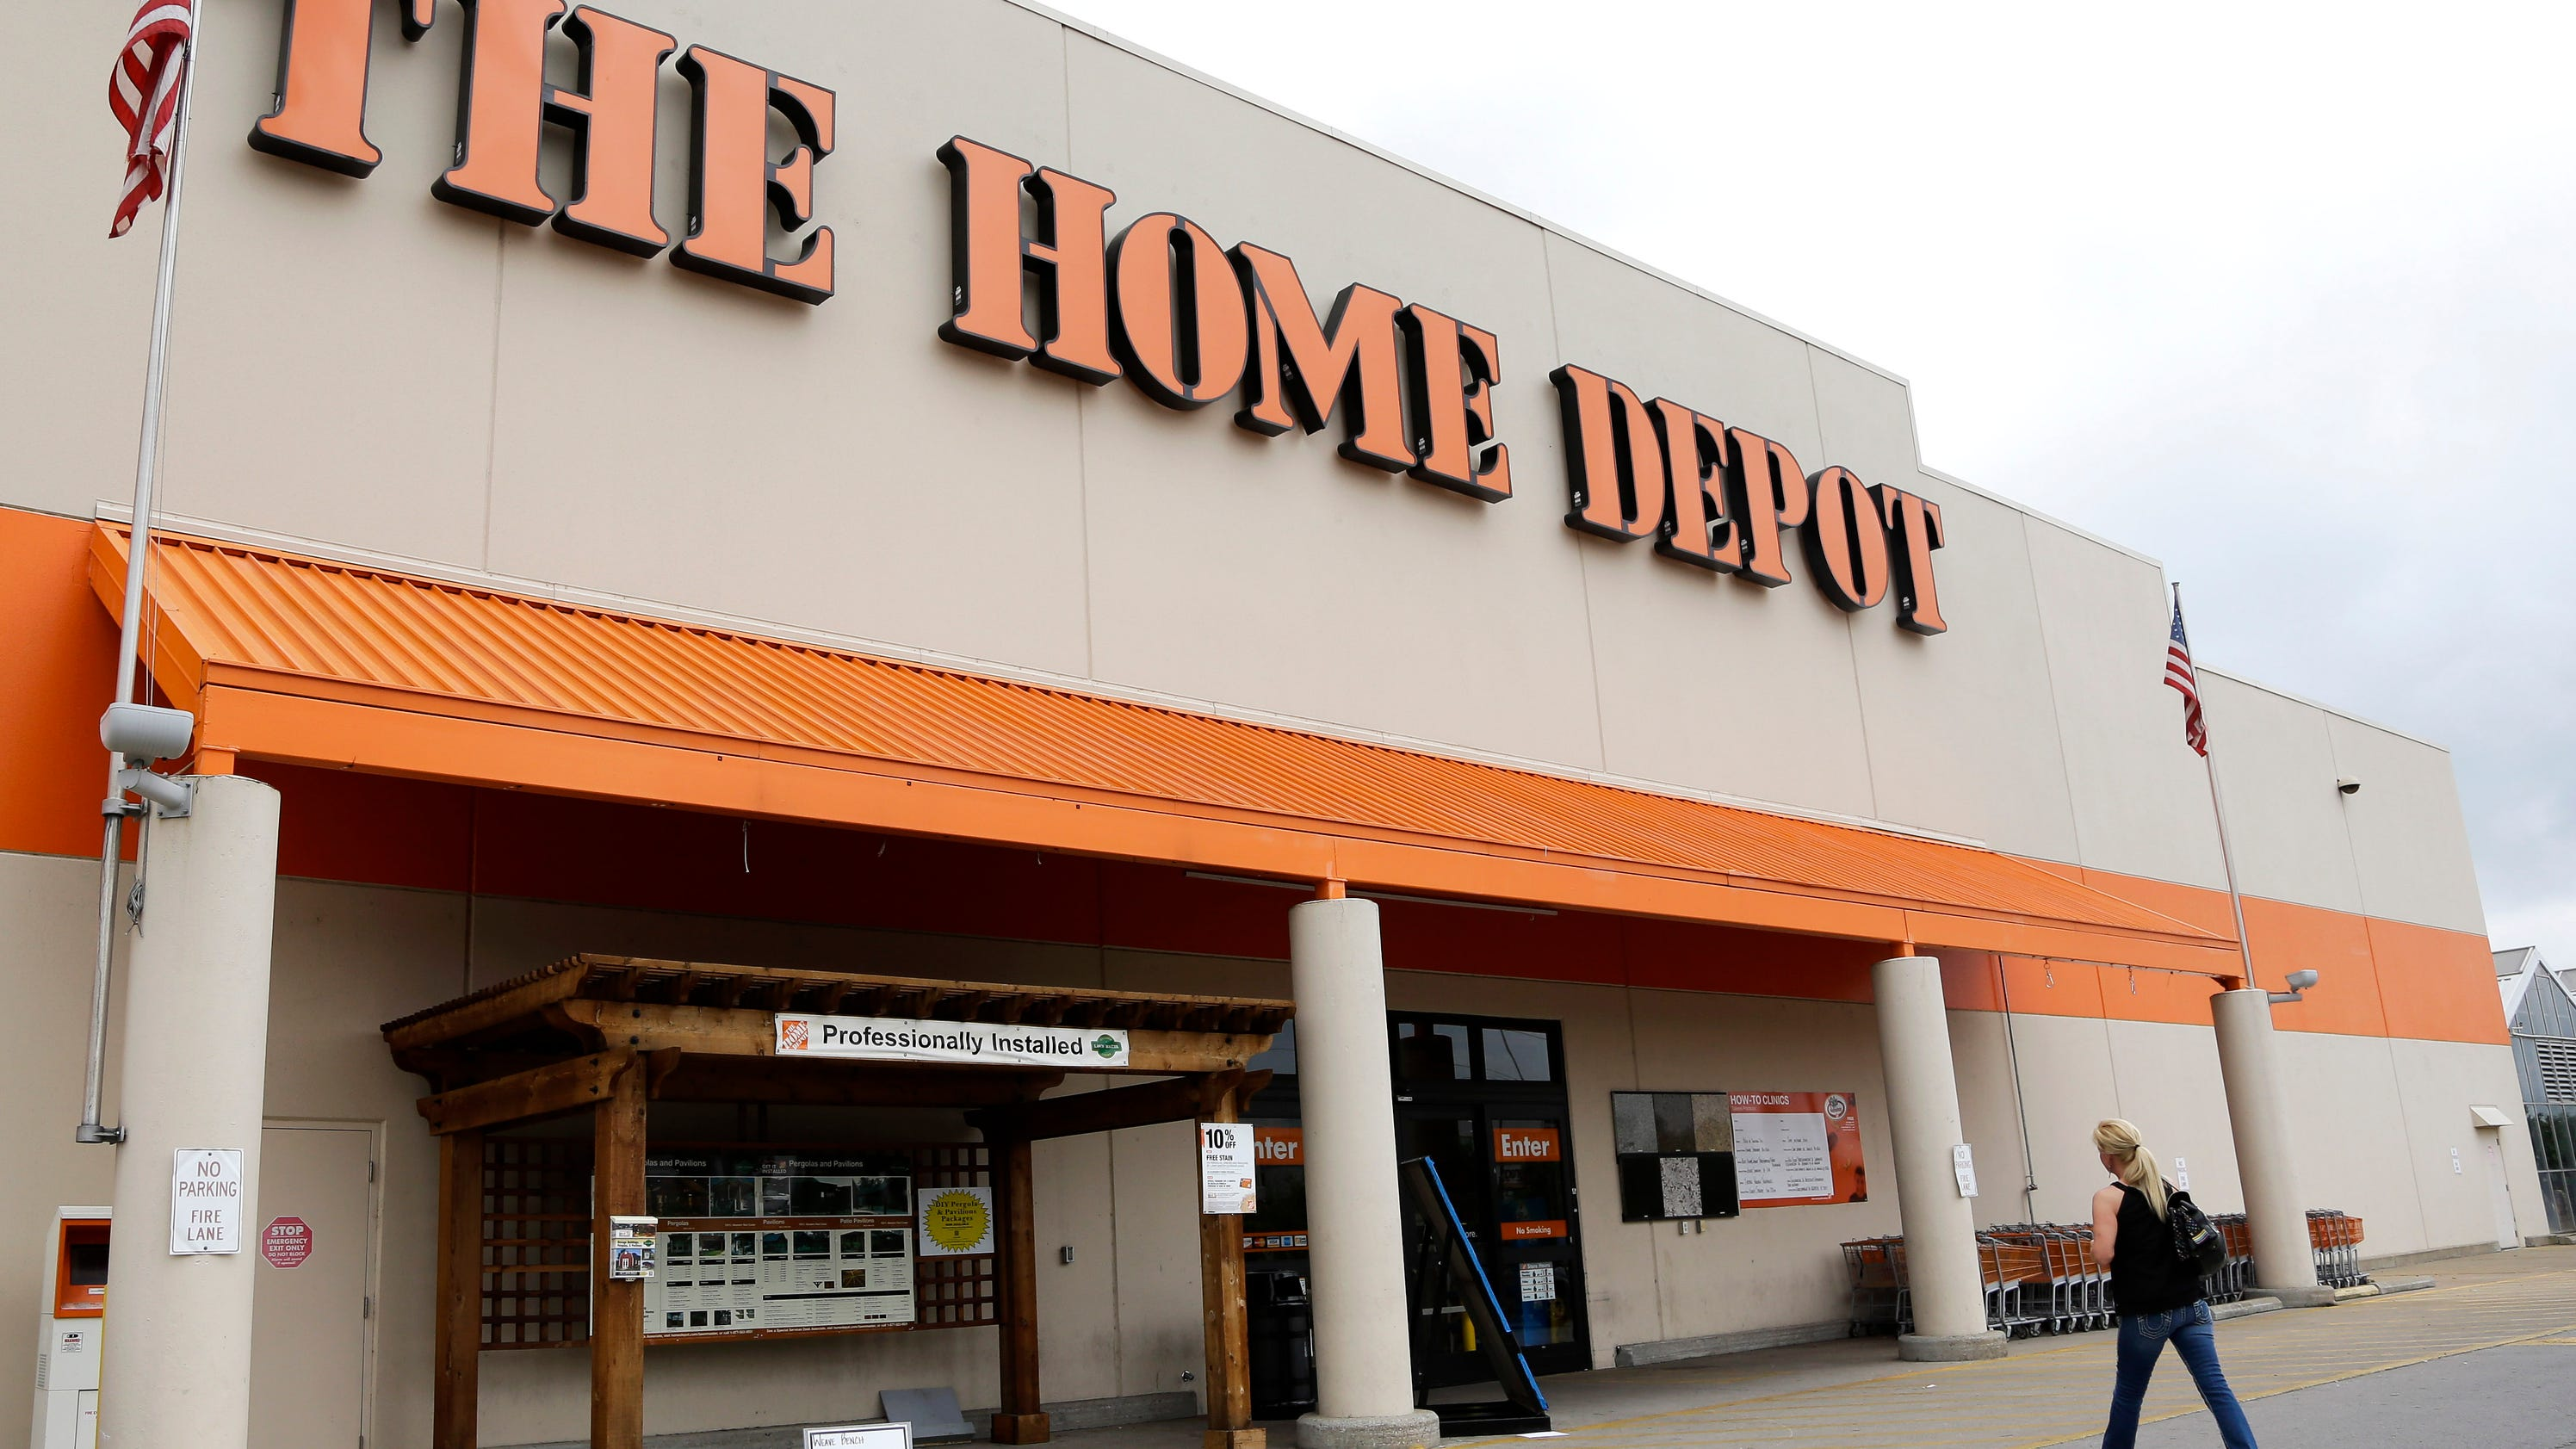 Home Depot hiring in southeast Wisconsin